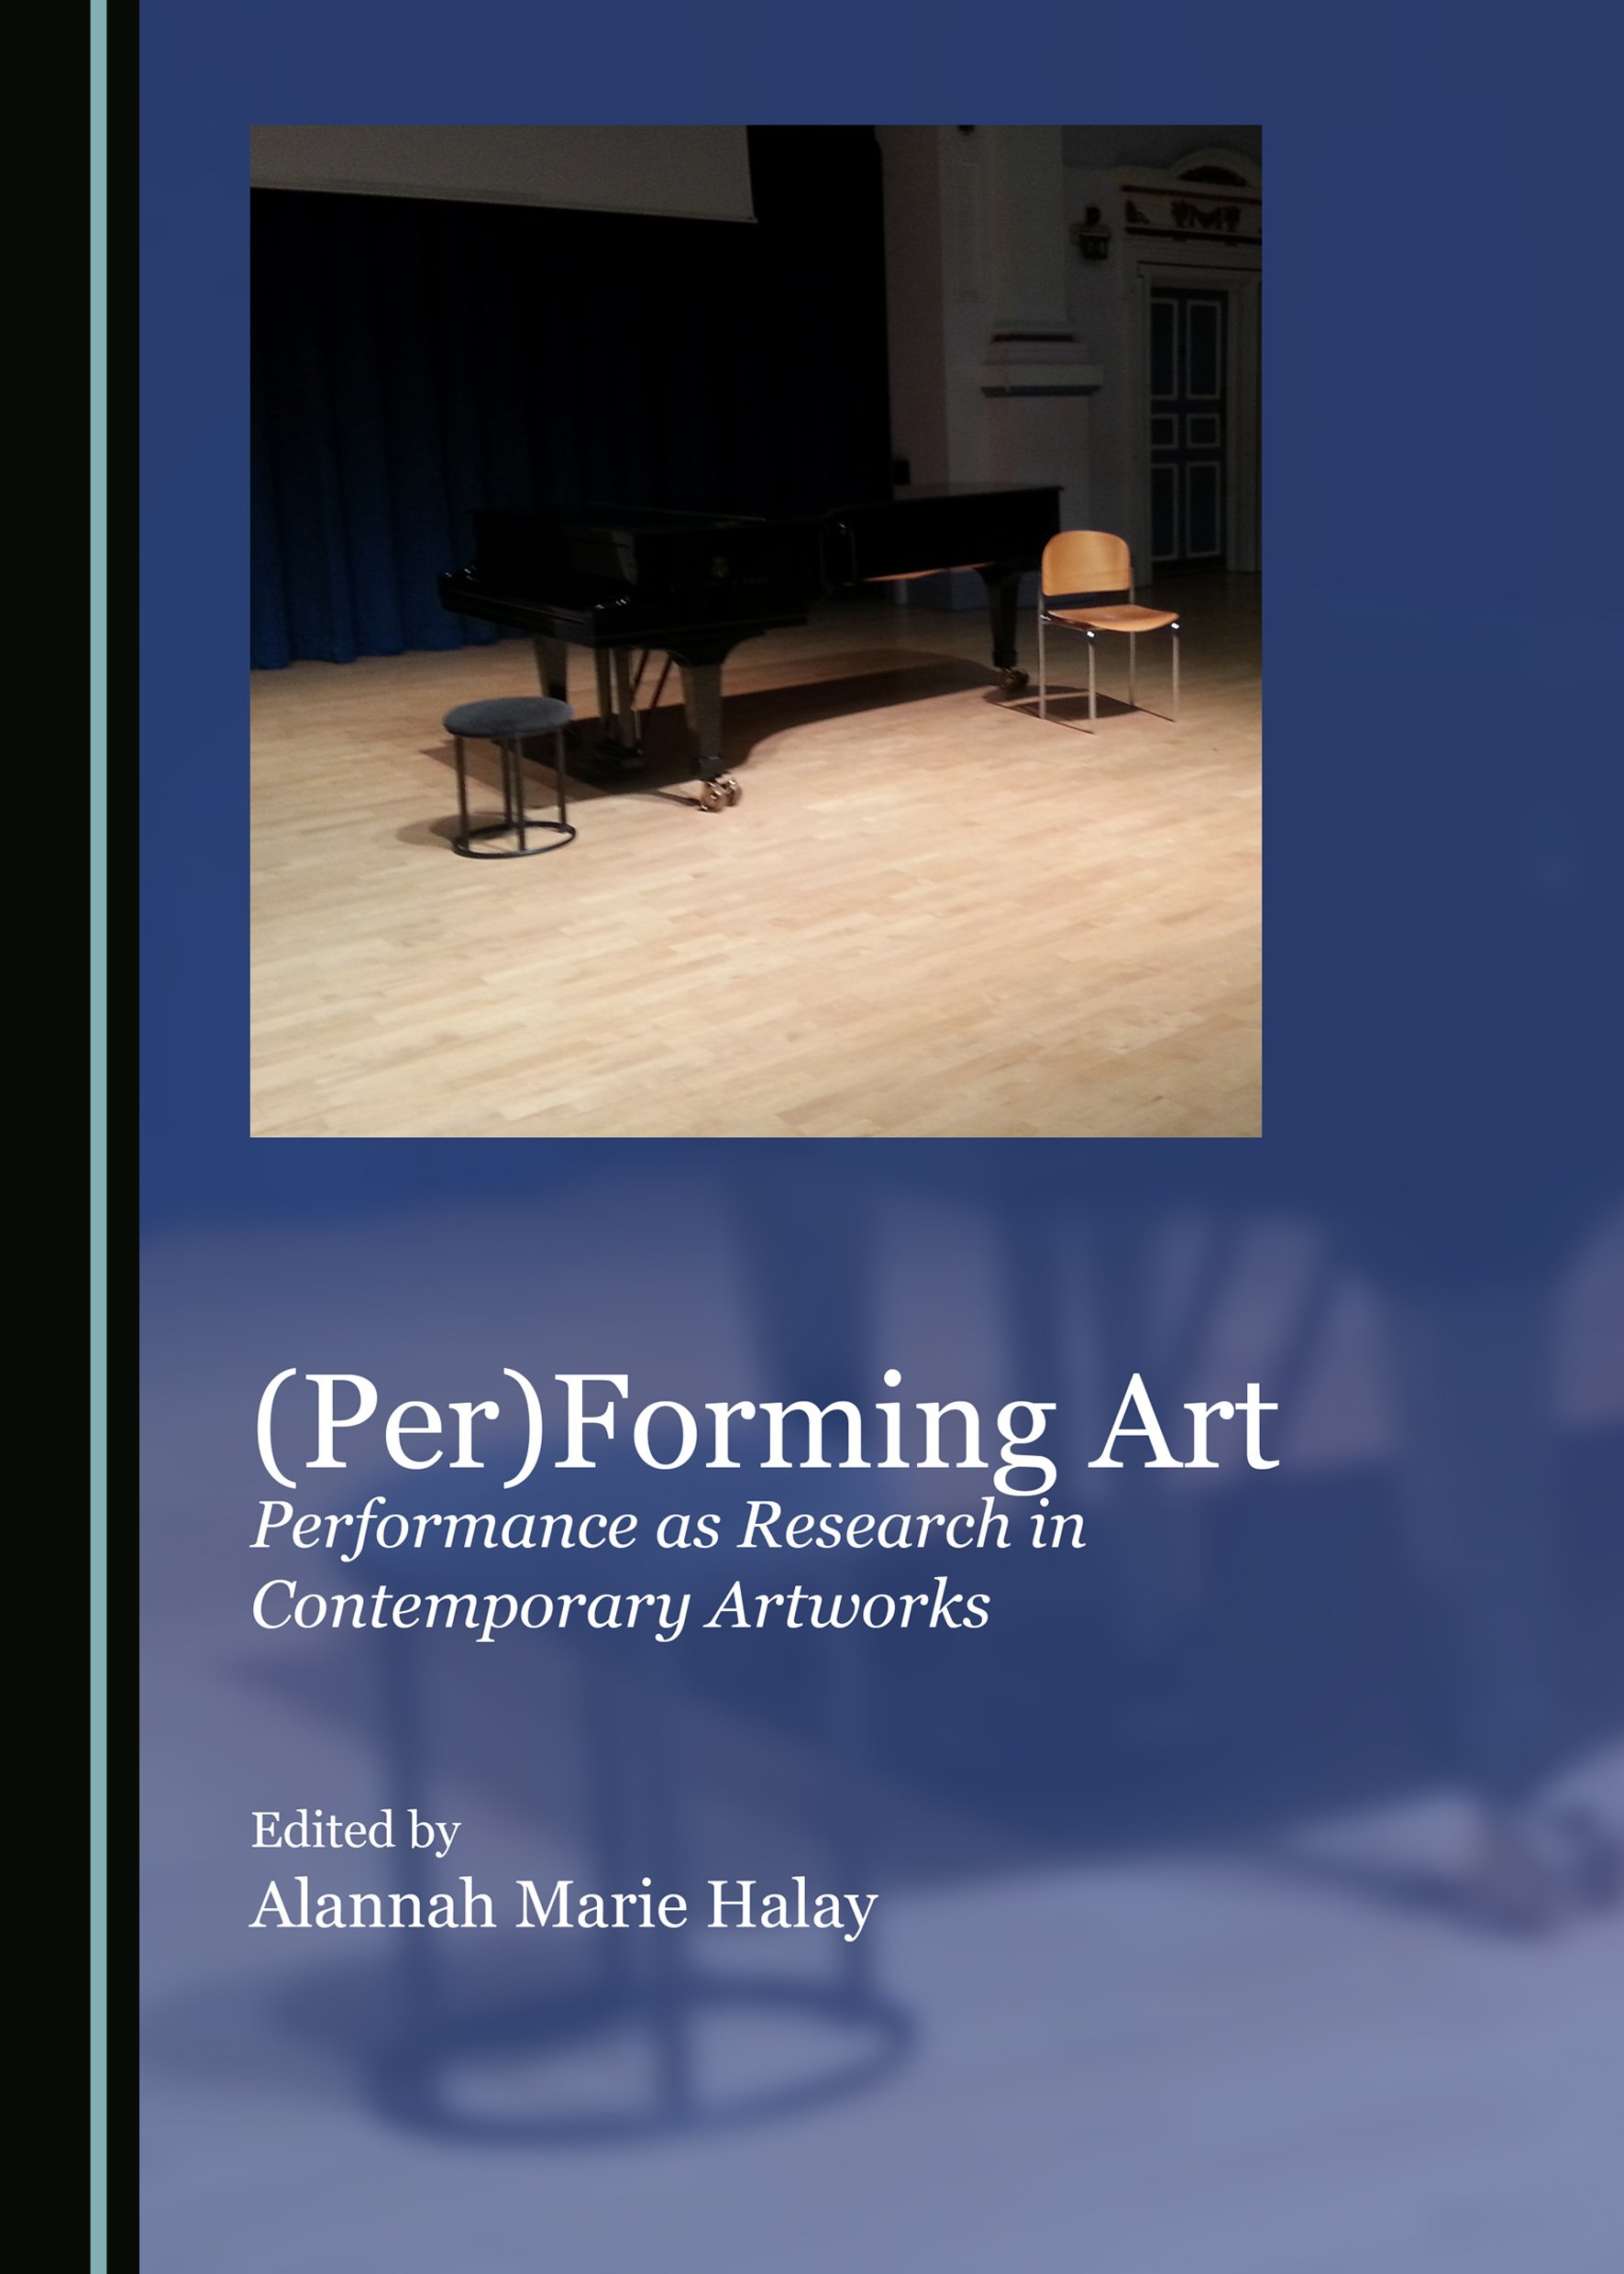 (Per)Forming Art: Performance as Research in Contemporary Artworks